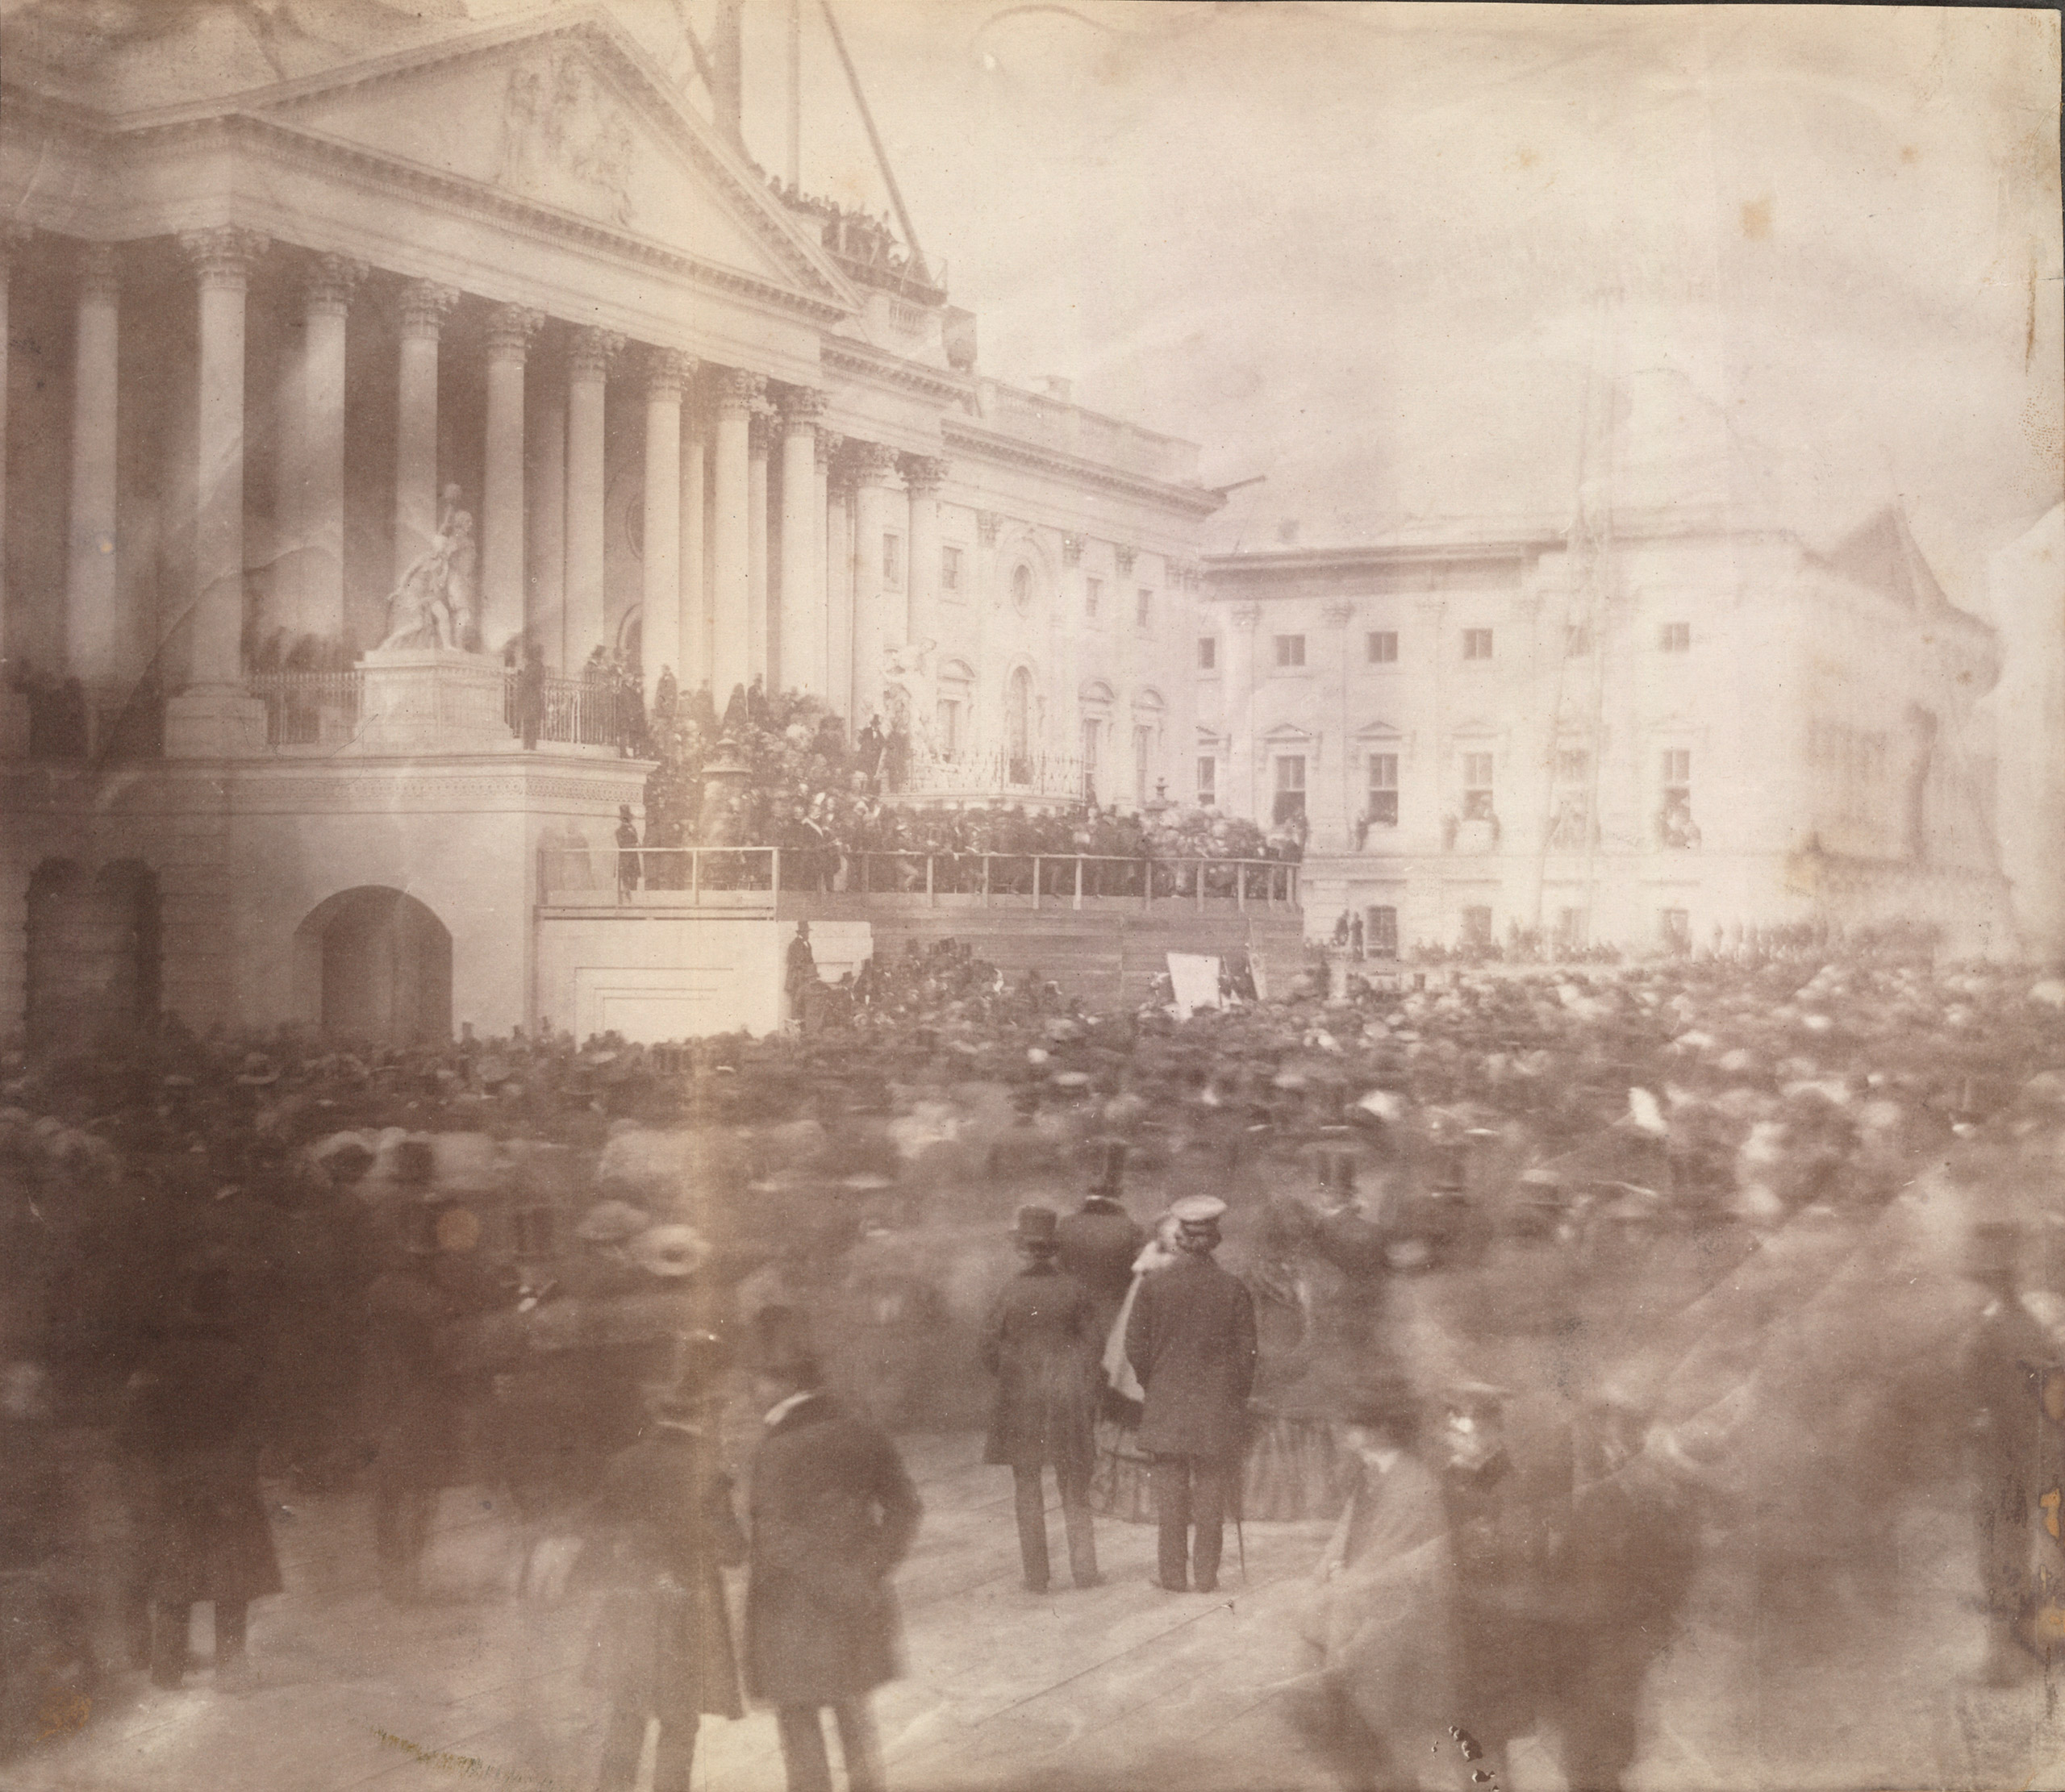 First photograph of an inaugration at the Capitol, James Buchanan, 1857.